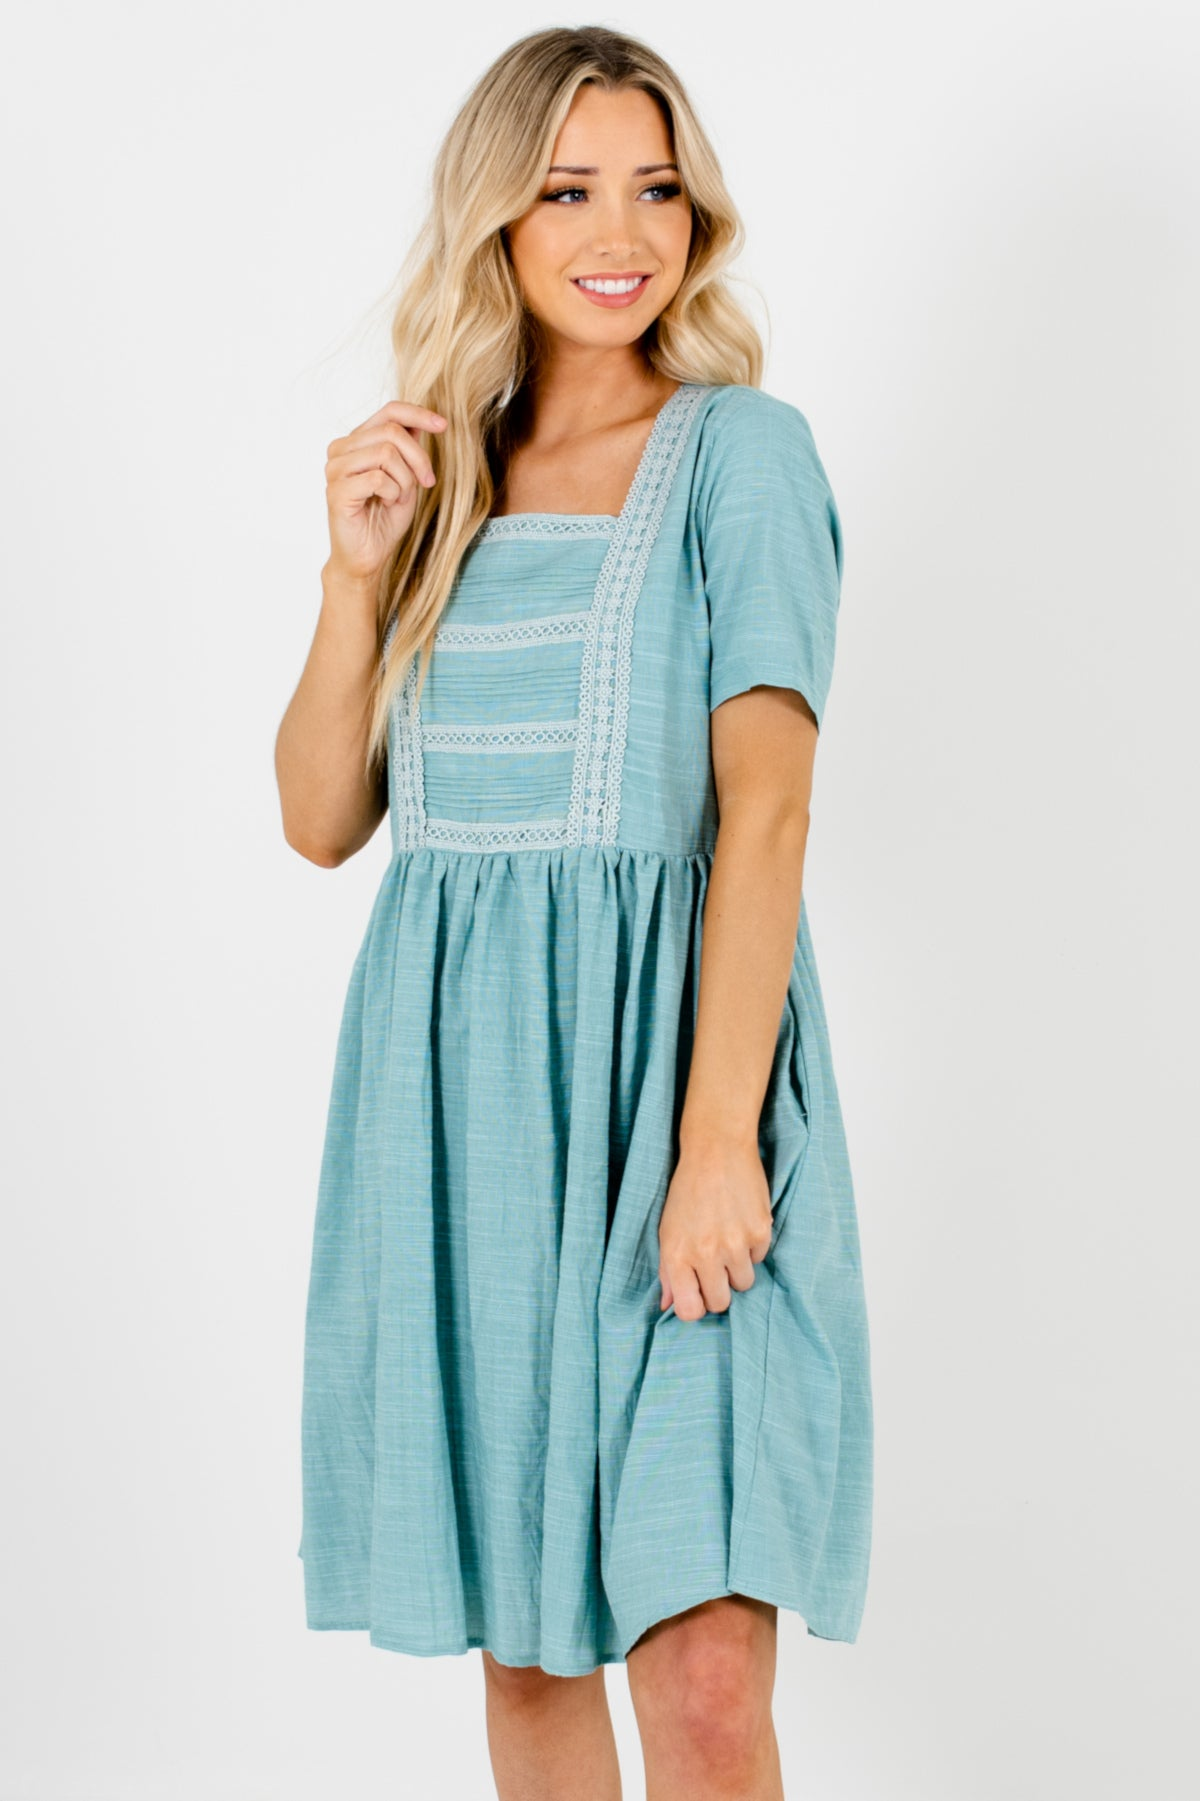 Turquoise Blue Smock Crochet Mini Dresses Affordable Online Boutique